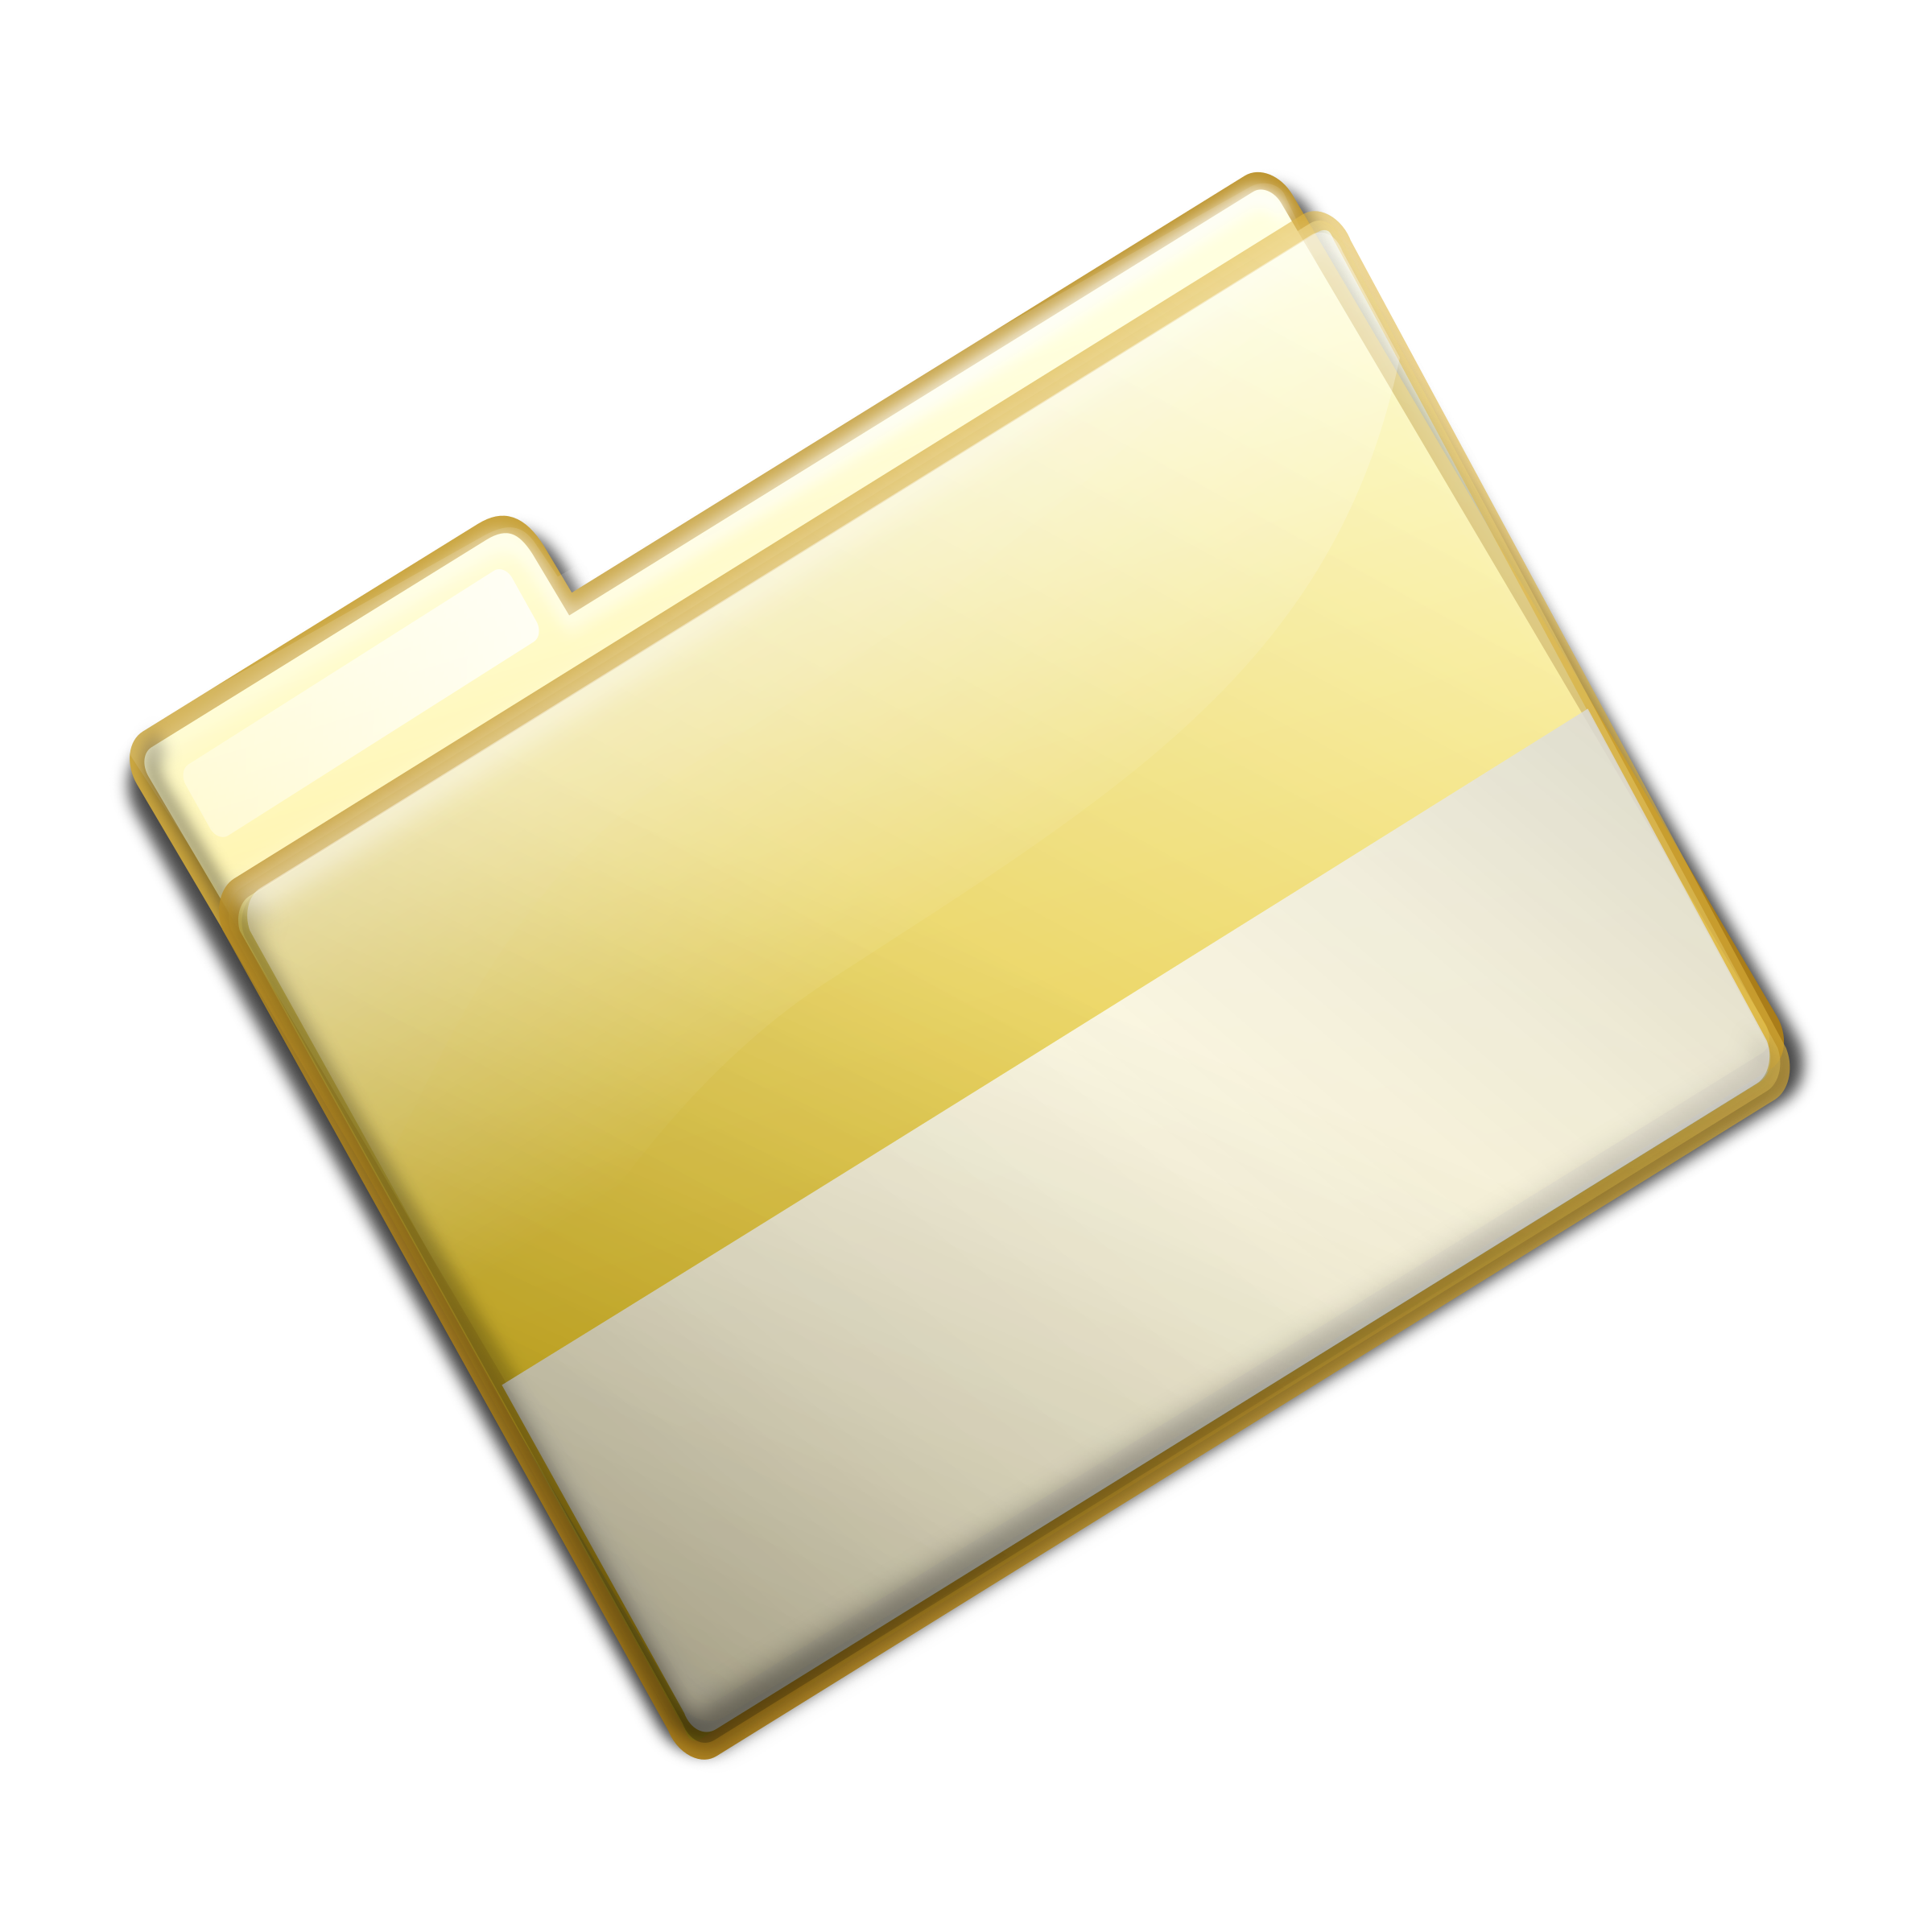 Closed Simple Yellow Folder by sarxos